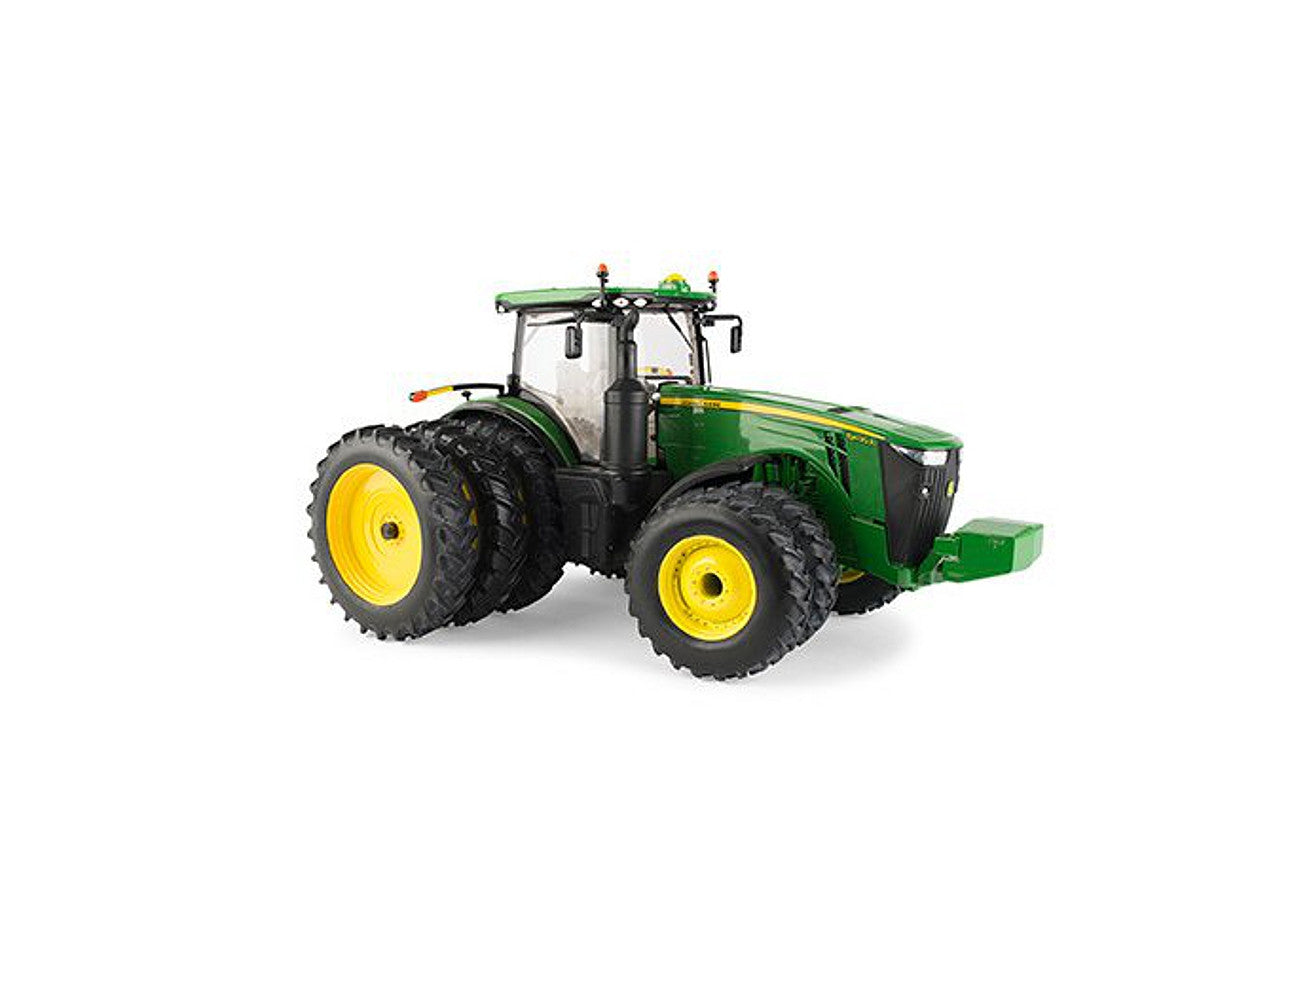 1/16 Scale John Deere 8400R Prestige Collection Tractor Troy by Ertl - LP66180